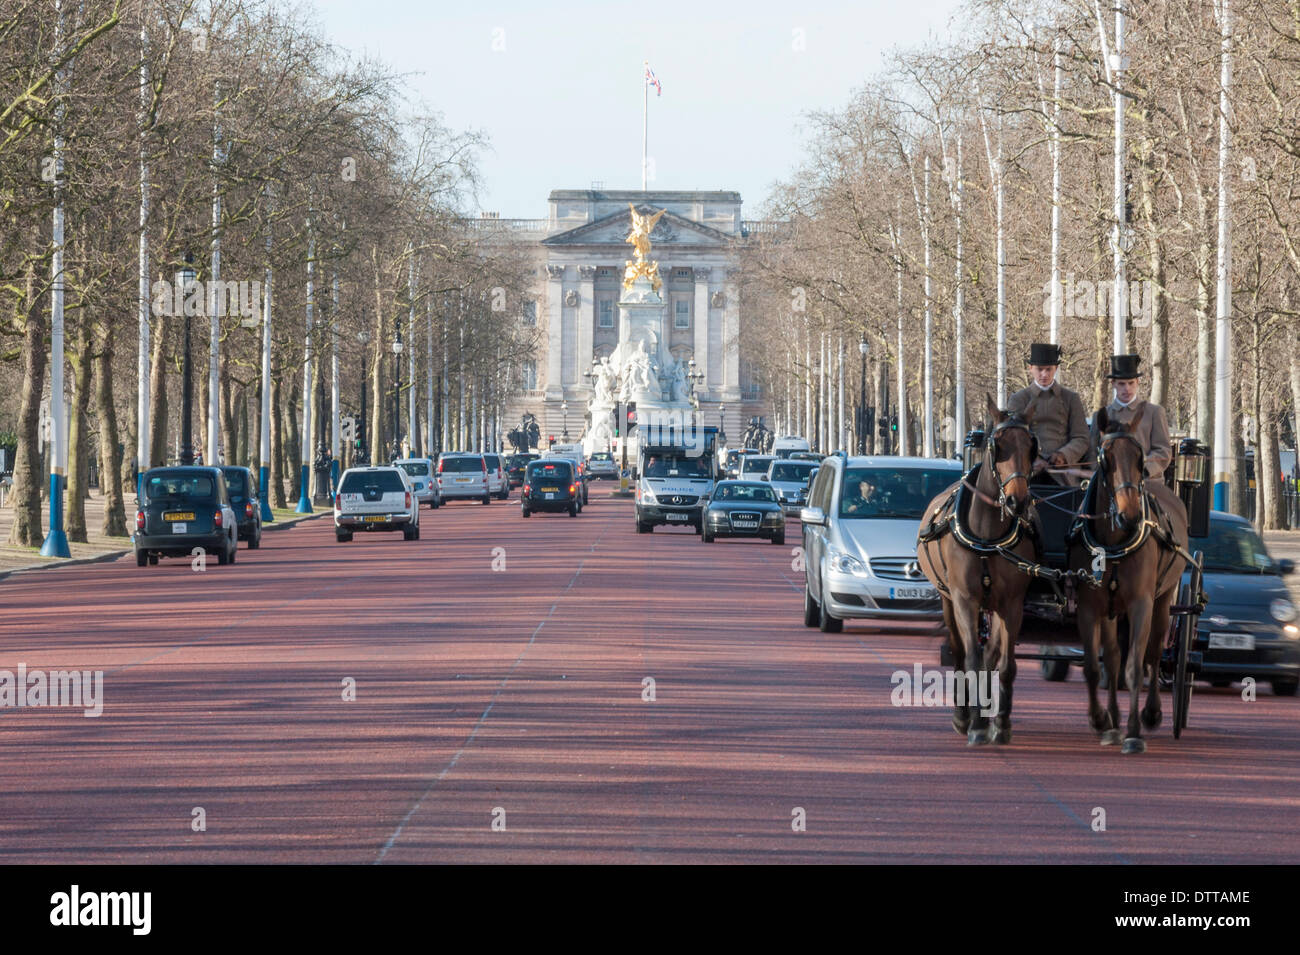 The Mall, London, UK. 24th February, 2014. Air pollution near Buckingham Palace is the worst in the UK & almost 4 times the EU legal limit, according to the latest figures. Last week the European Commission launched legal proceedings against the UK for failing to deal with high levels of NO2. Credit:  Lee Thomas/Alamy Live News - Stock Image